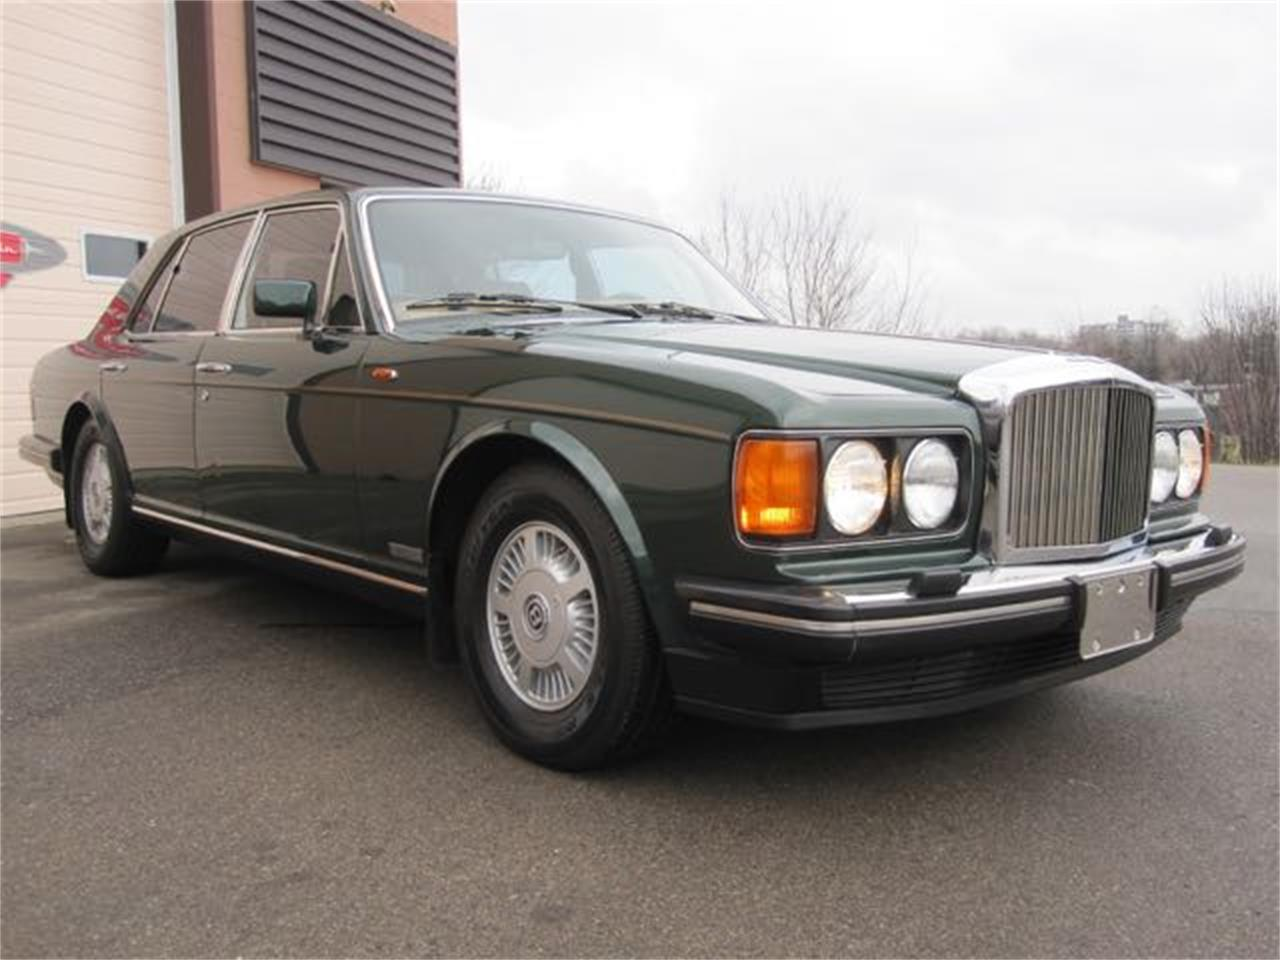 Large Picture of 1992 Mulsanne S located in Waterloo Ontario Auction Vehicle - LART